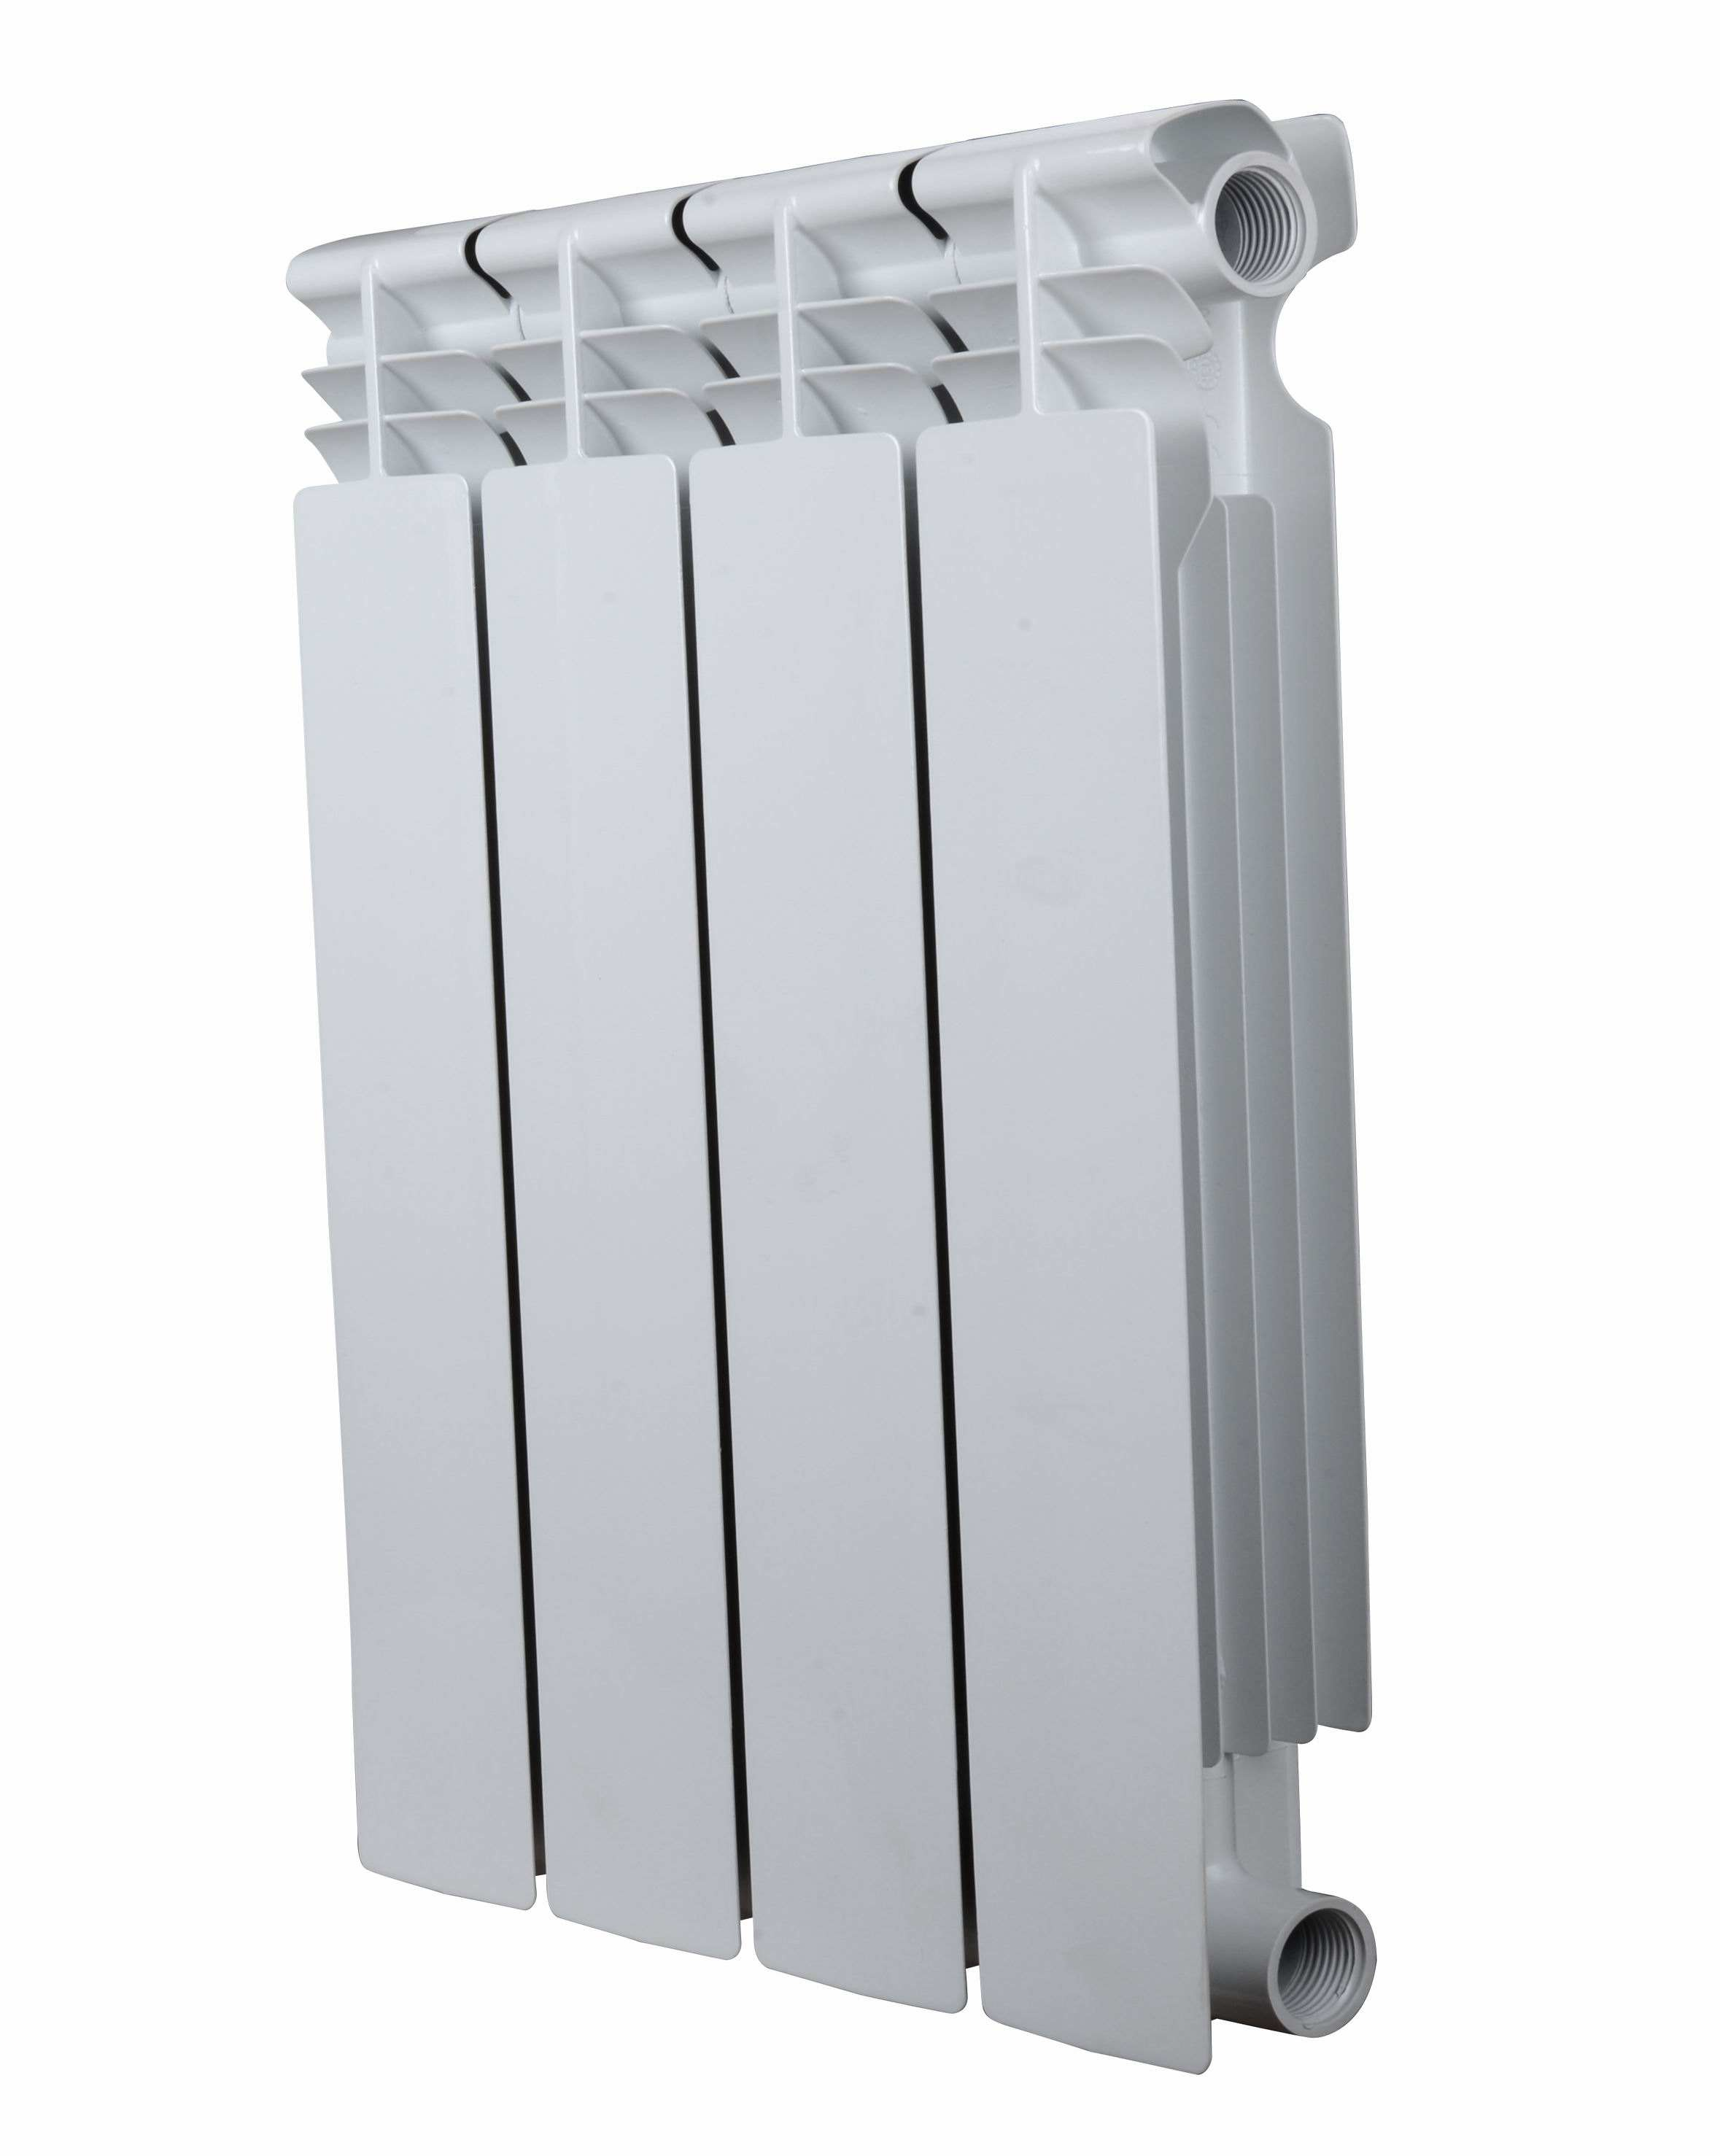 China bimetal radiators for central heating